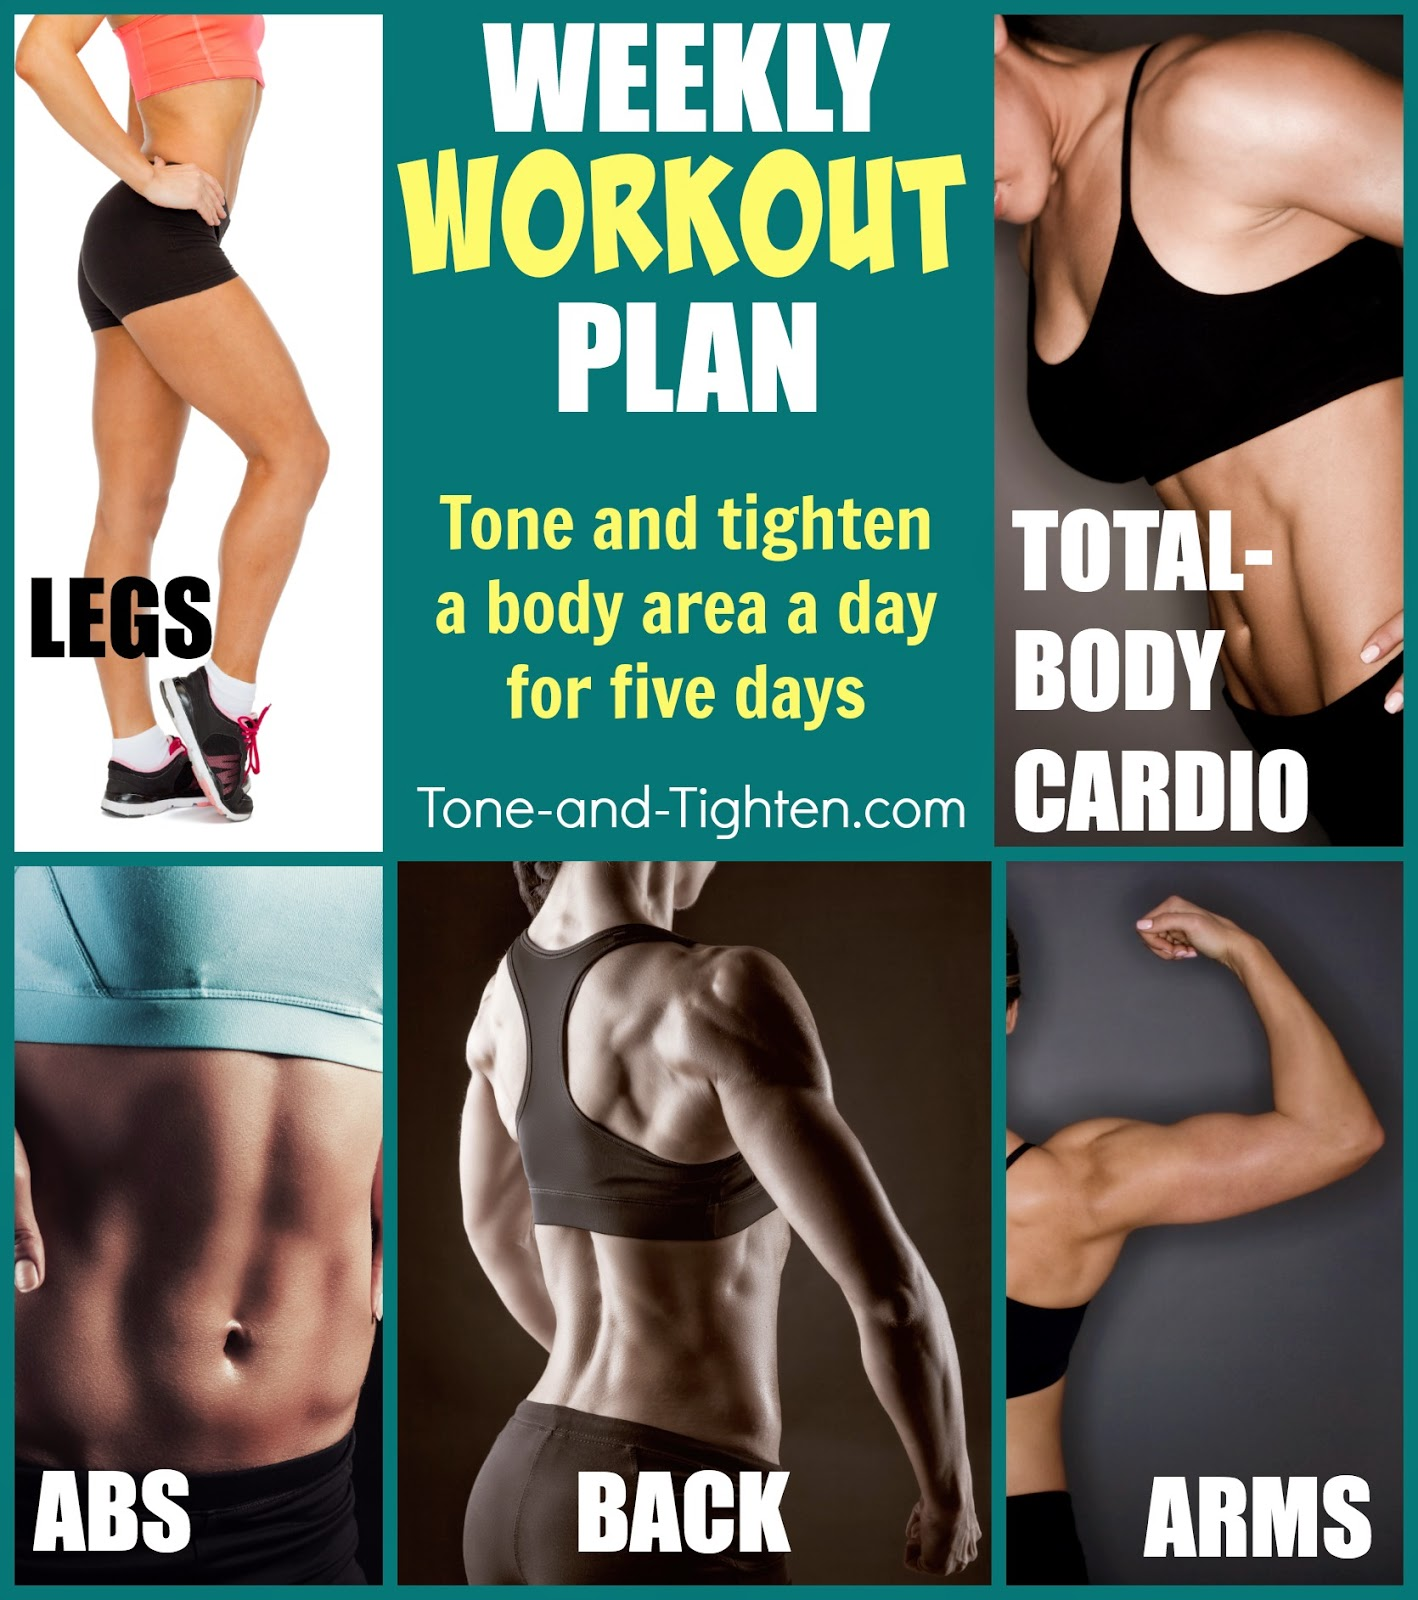 Weekly Workout Plan Tone And Tighten Your Whole Body With This Amazing Week Of Free Workouts